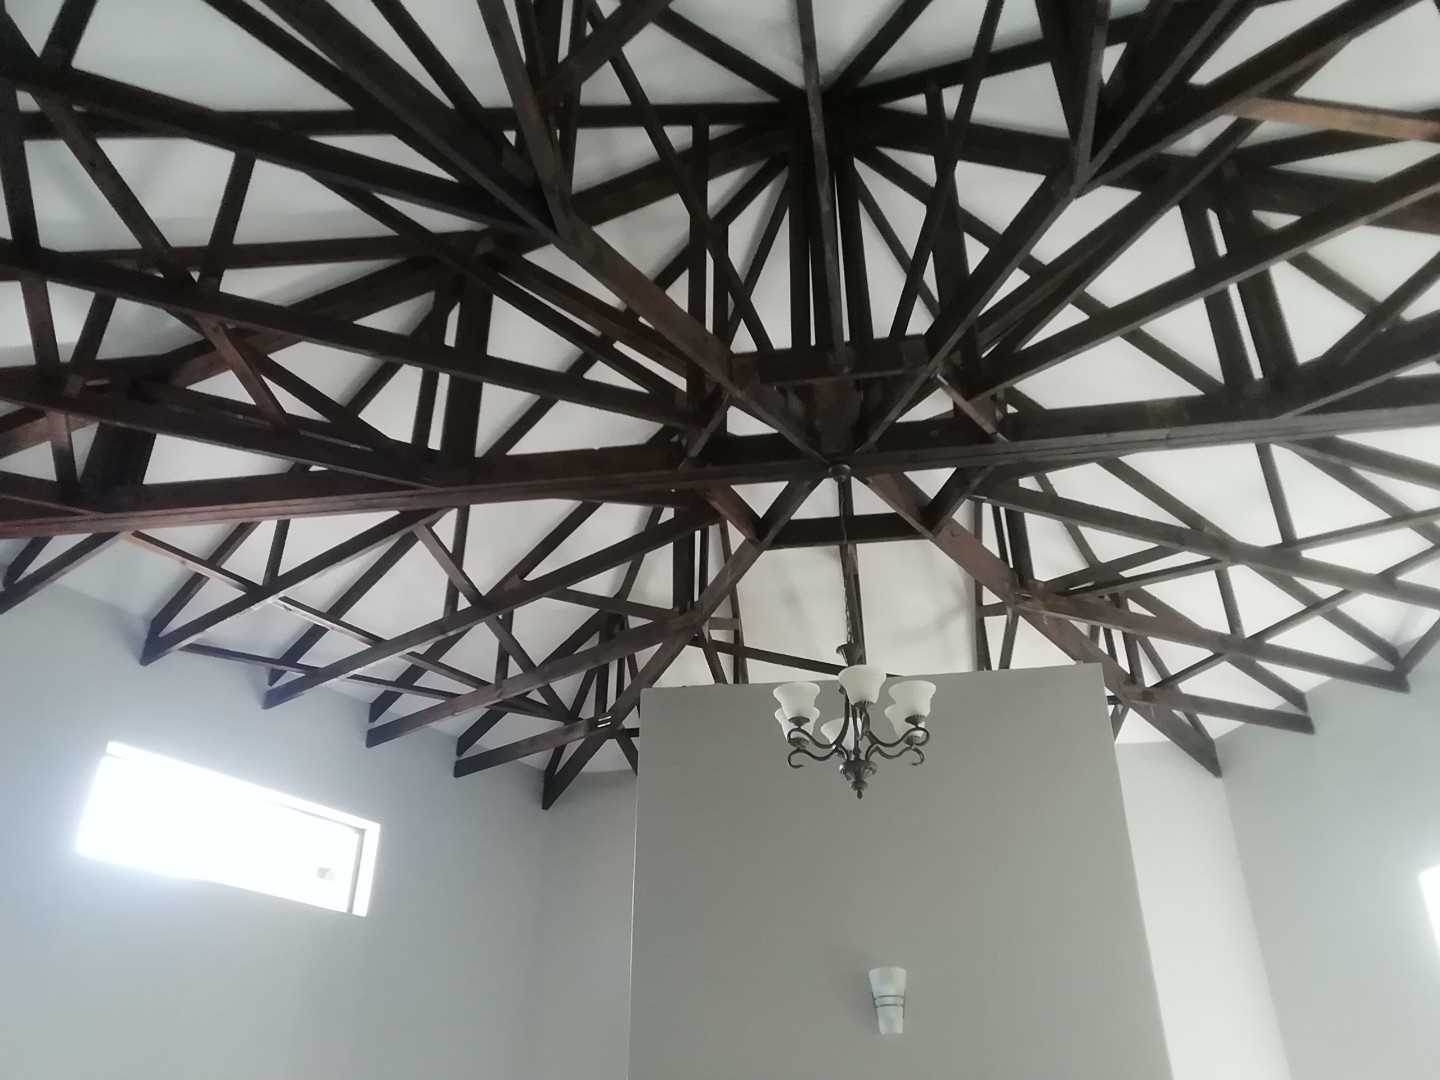 Designed ceiling over living area and kitchen.